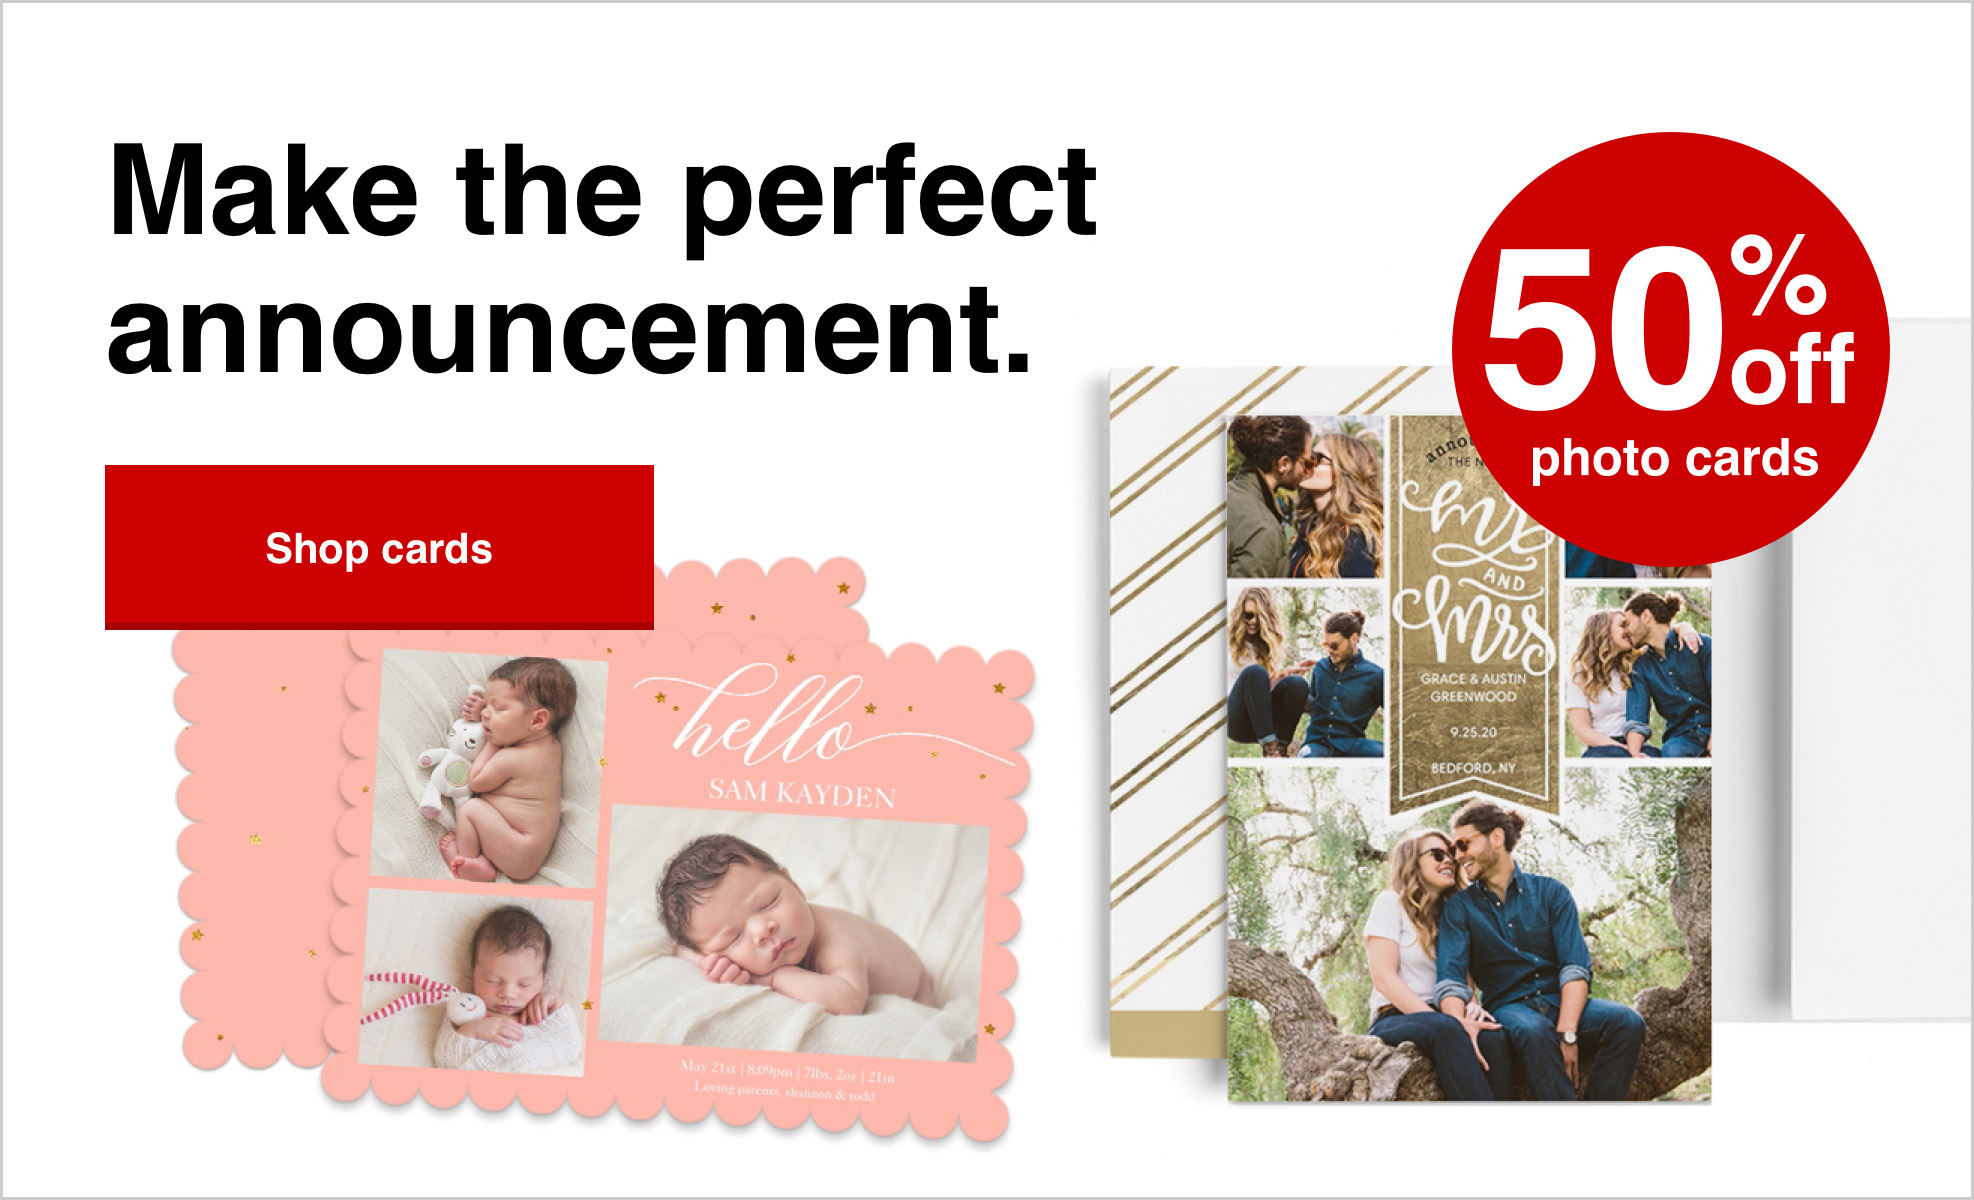 50% off cards with Promo Code GREETING50 Offer ends 4/17/21.